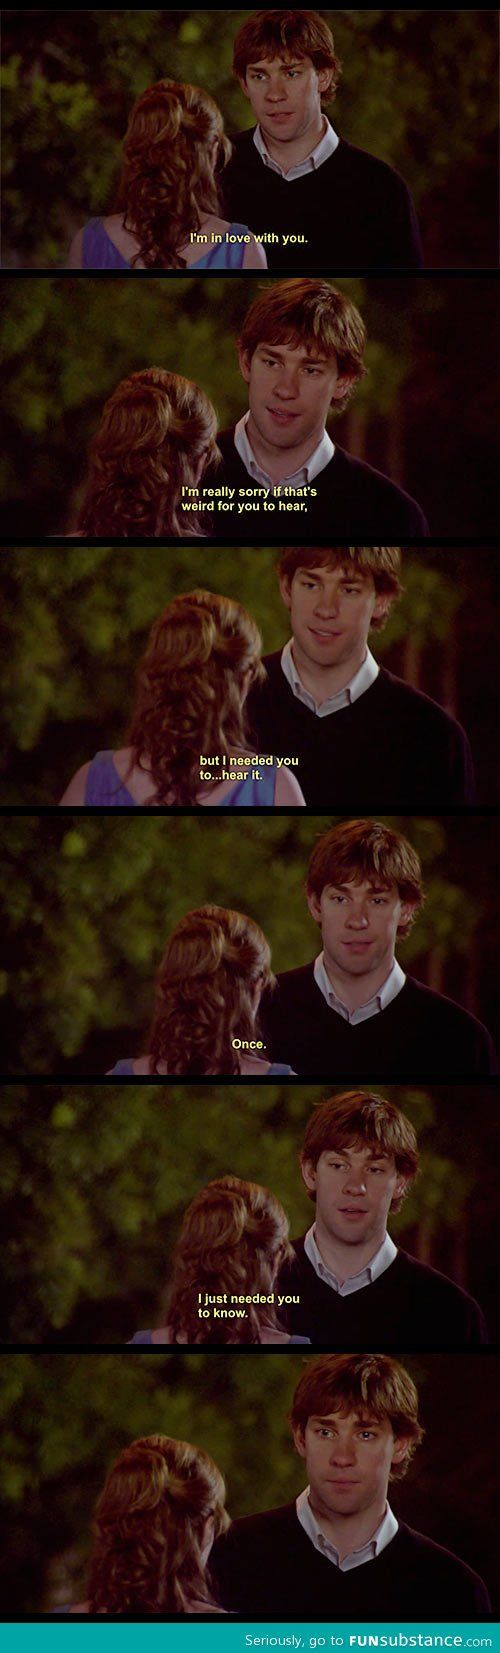 The last scene is a punch in the feels, The greatest sitcom romance of all time I think